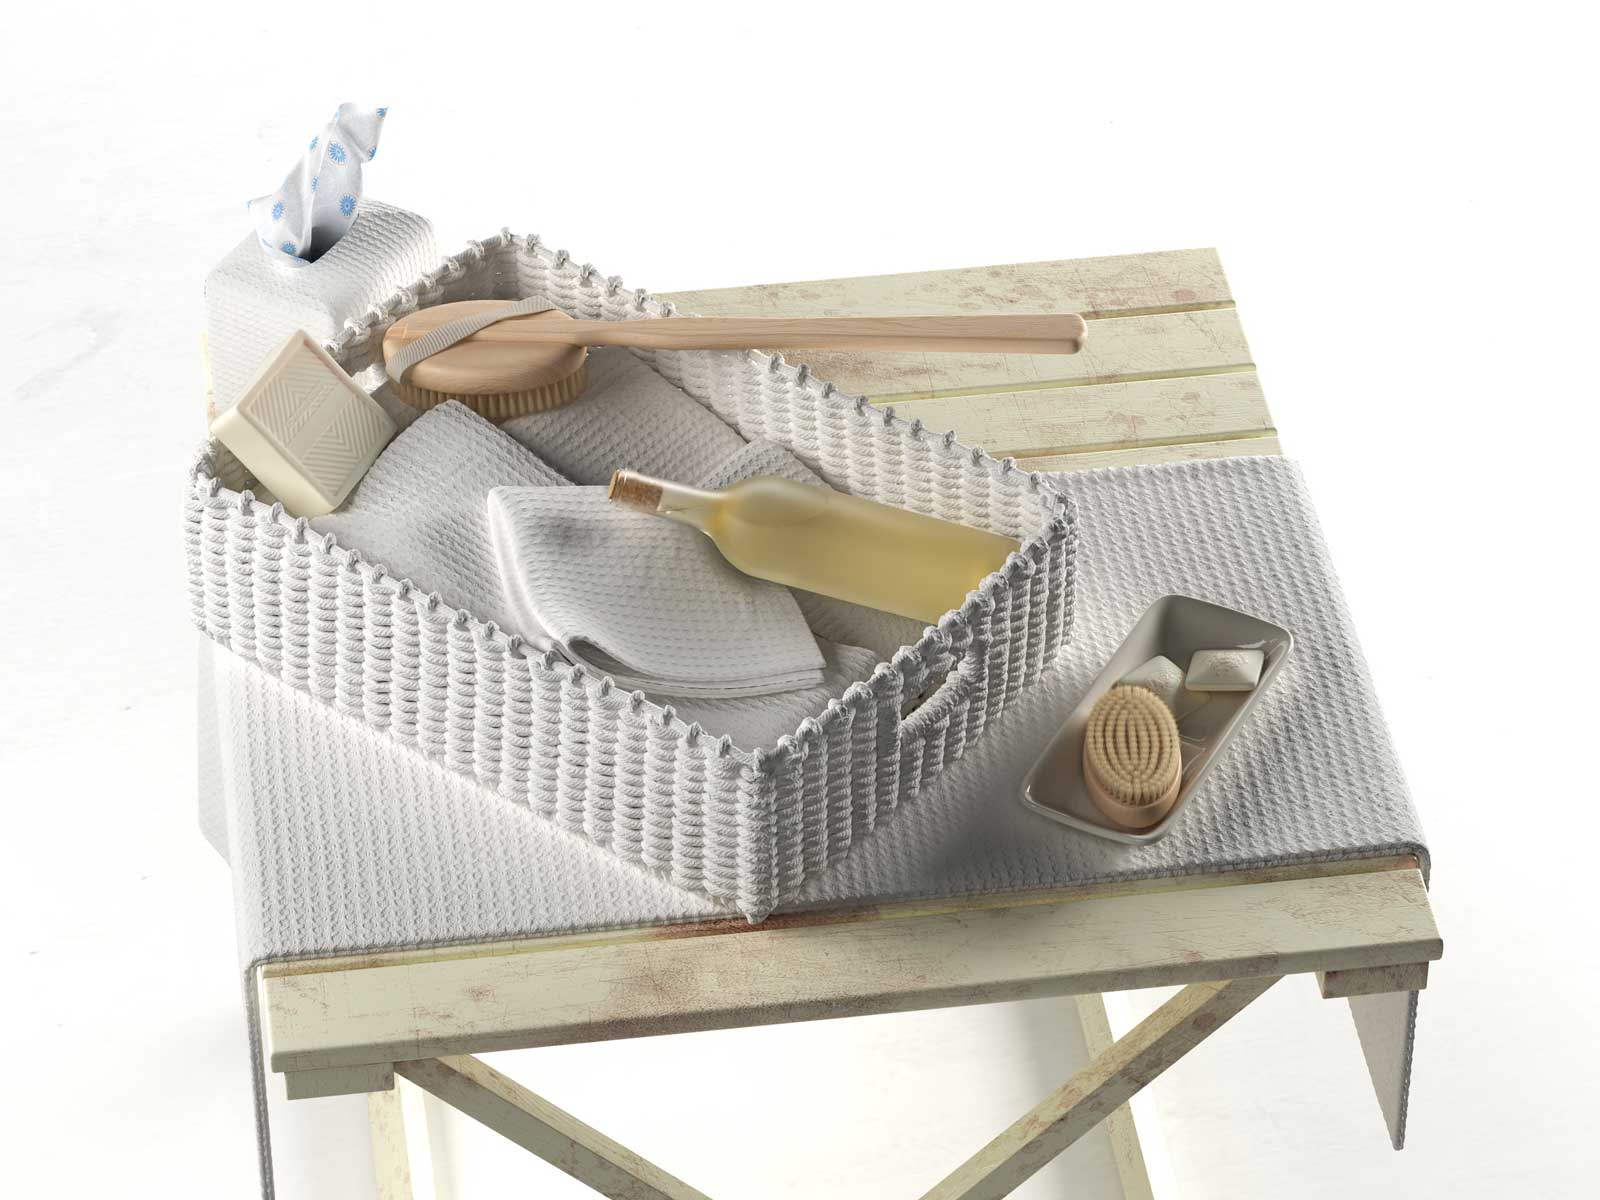 Bathroom Toiletries On Wicker Tray